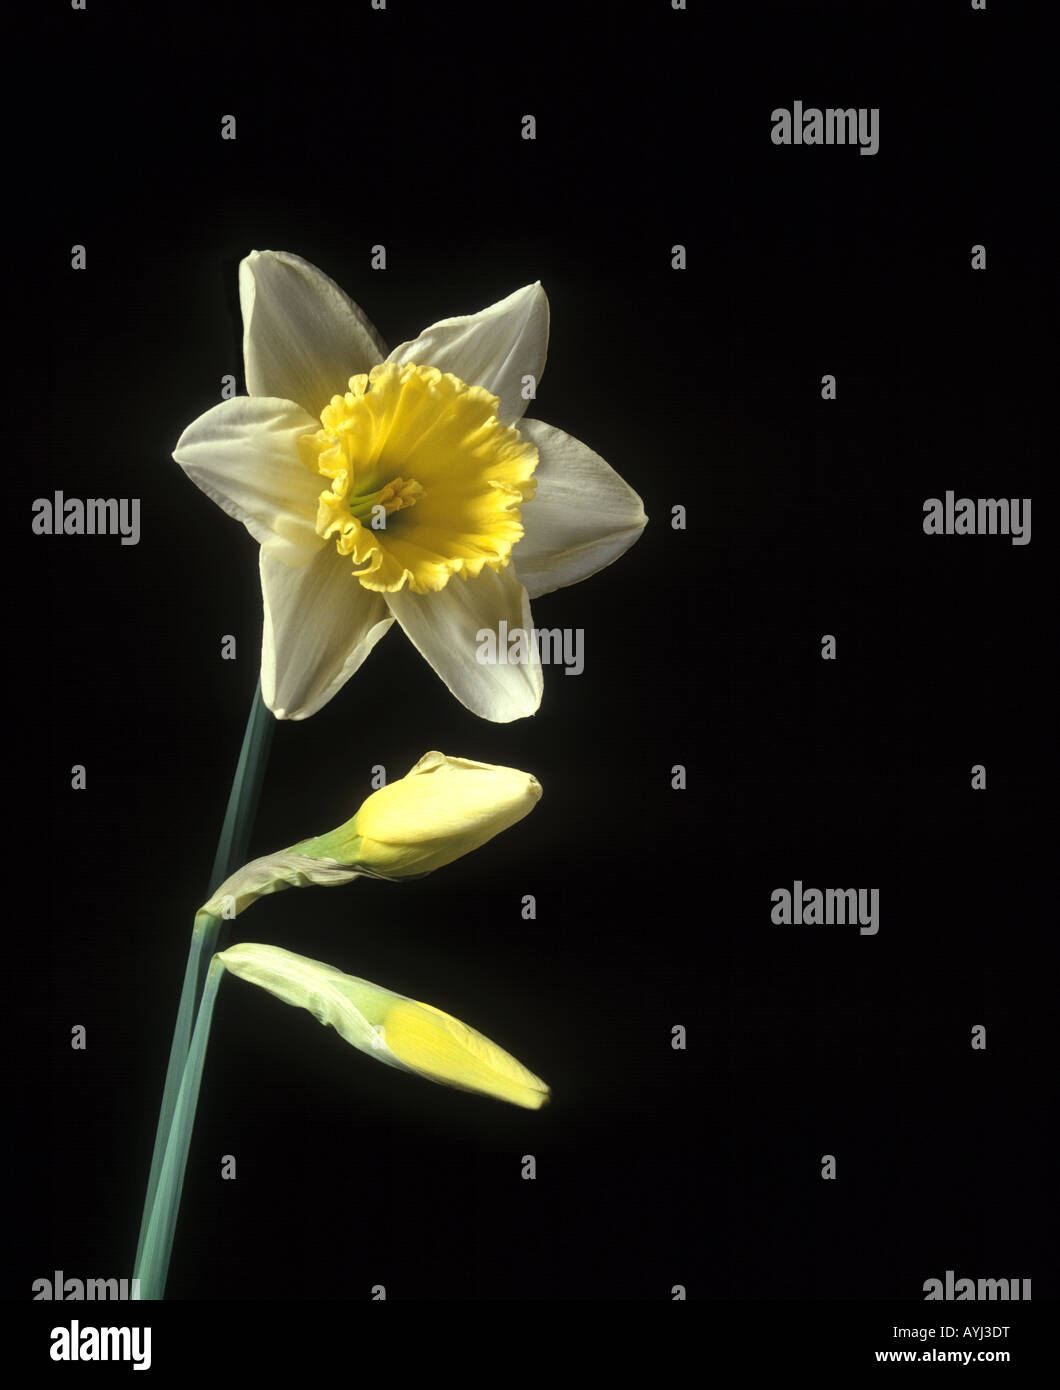 time lapse photo of daffodil on black background - Stock Image